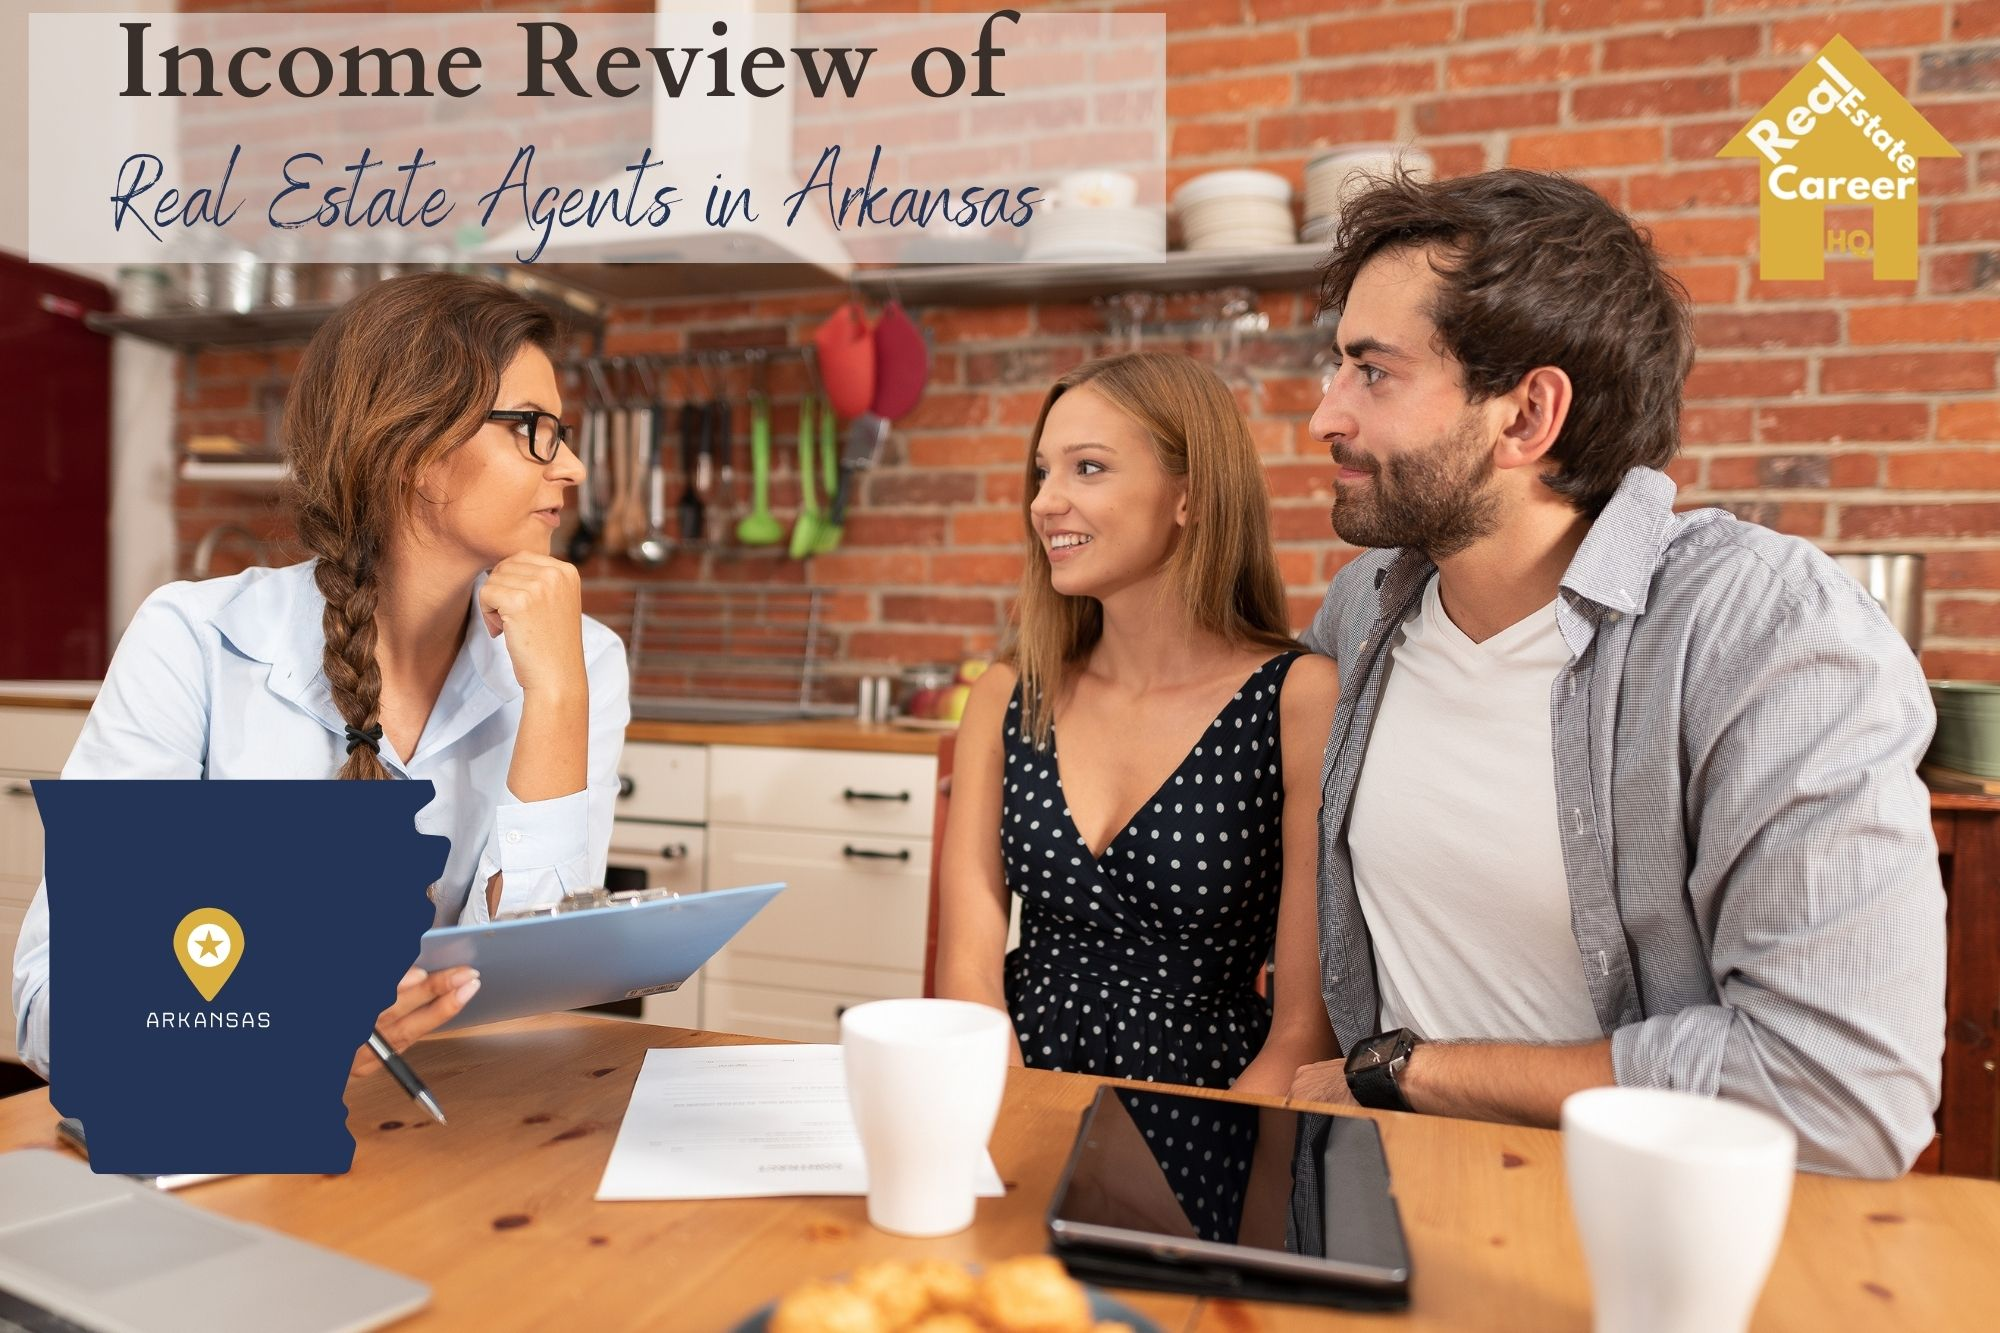 Arkansas Real Estate Agent Income Review